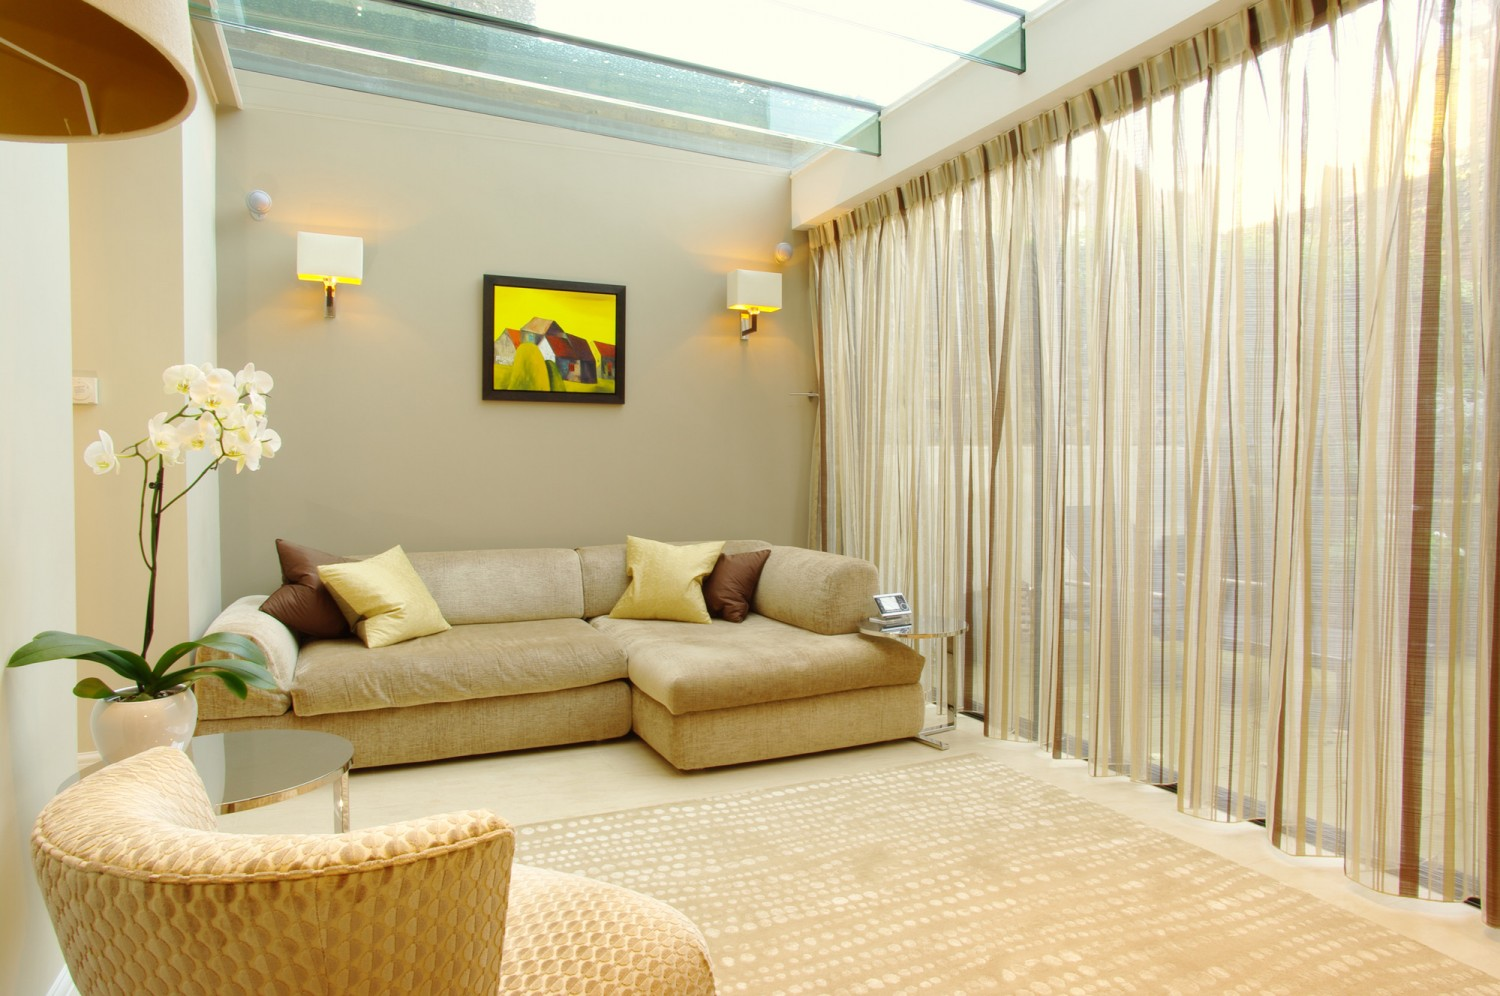 1 beige sofa and curtains 1500x996 1 beige sofa and curtains